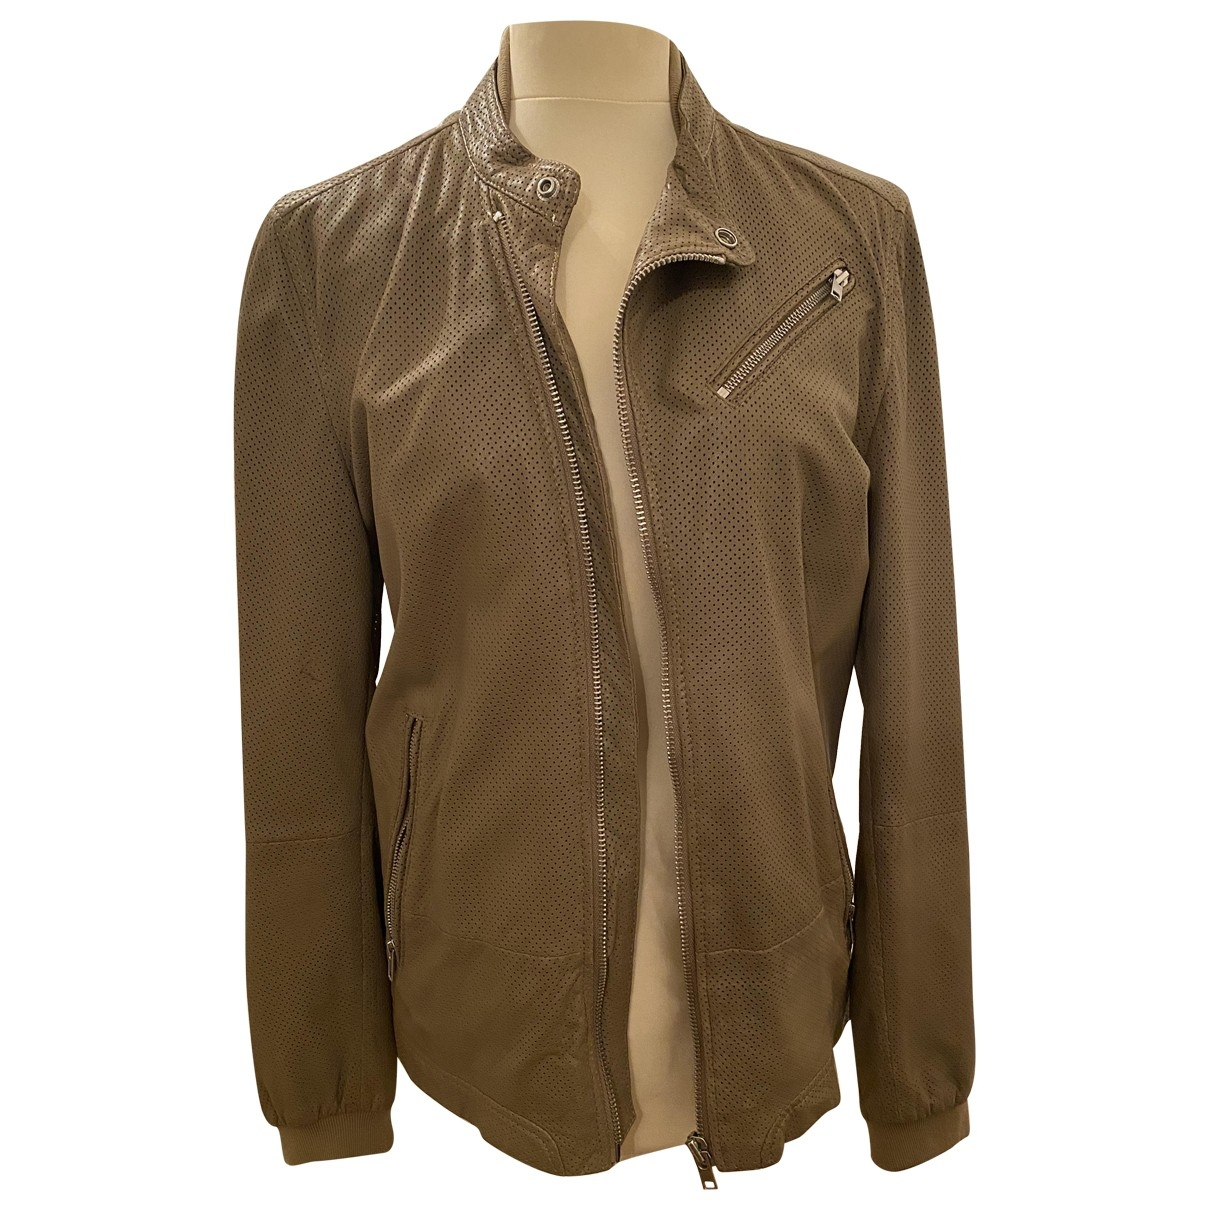 Diesel \N Beige Leather jacket  for Men S International